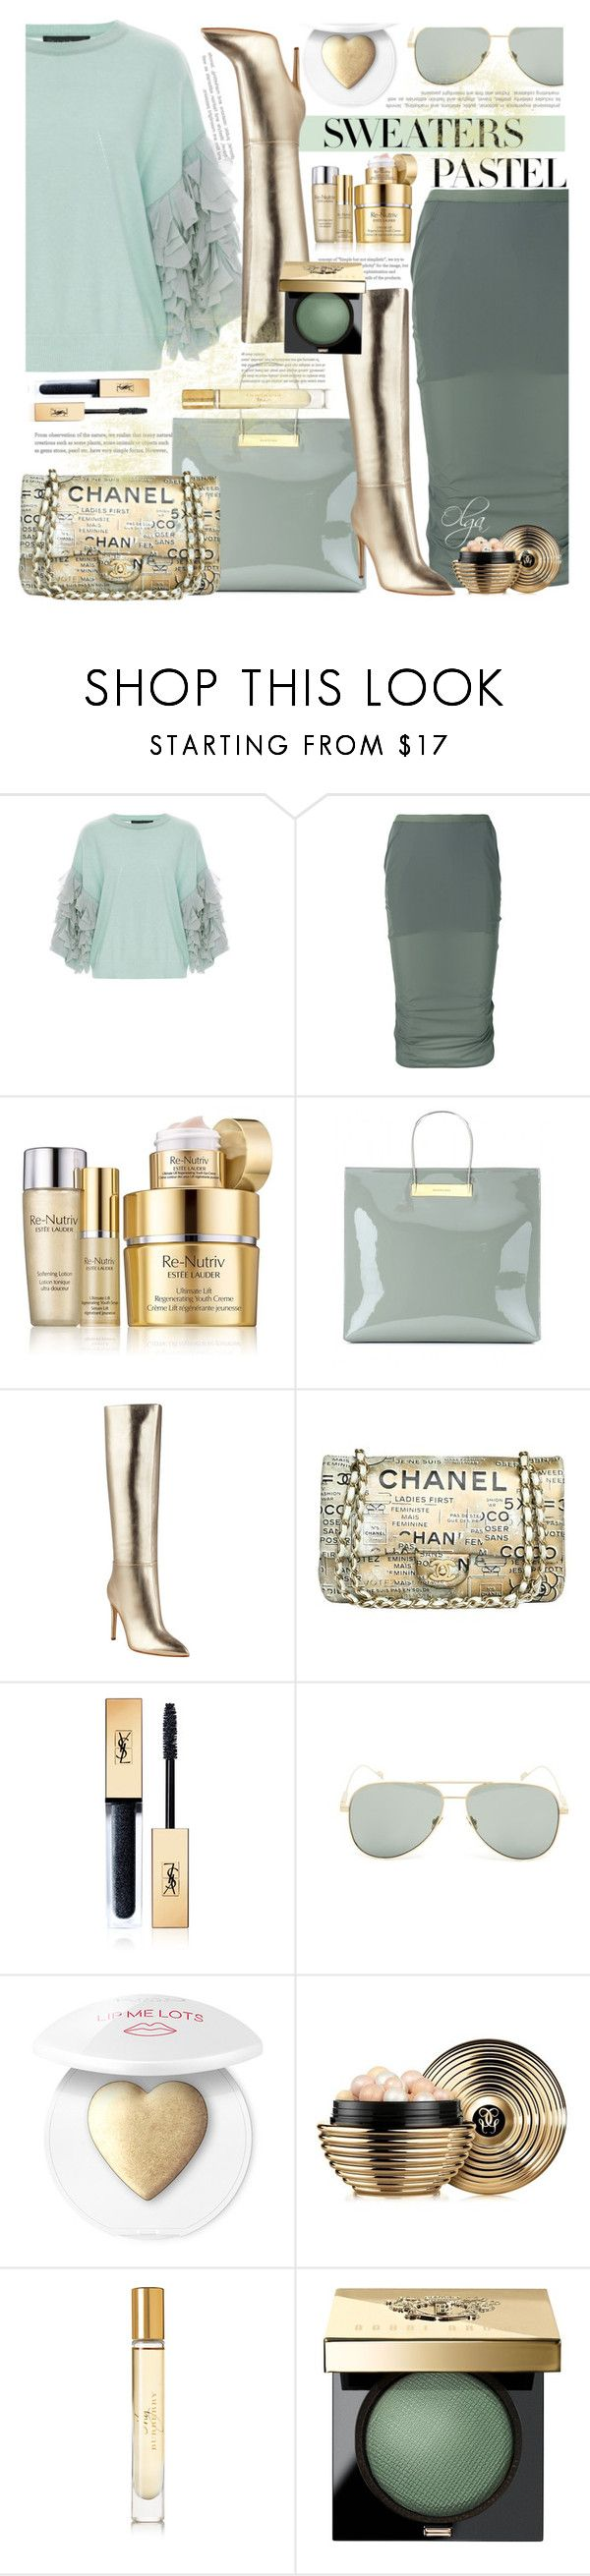 """Mint for Spring"" by olga1402 ❤ liked on Polyvore featuring Tabula Rasa, Rick Owens, Estée Lauder, Balenciaga, GUESS, Chanel, Yves Saint Laurent, Guerlain, Burberry and Bobbi Brown Cosmetics"